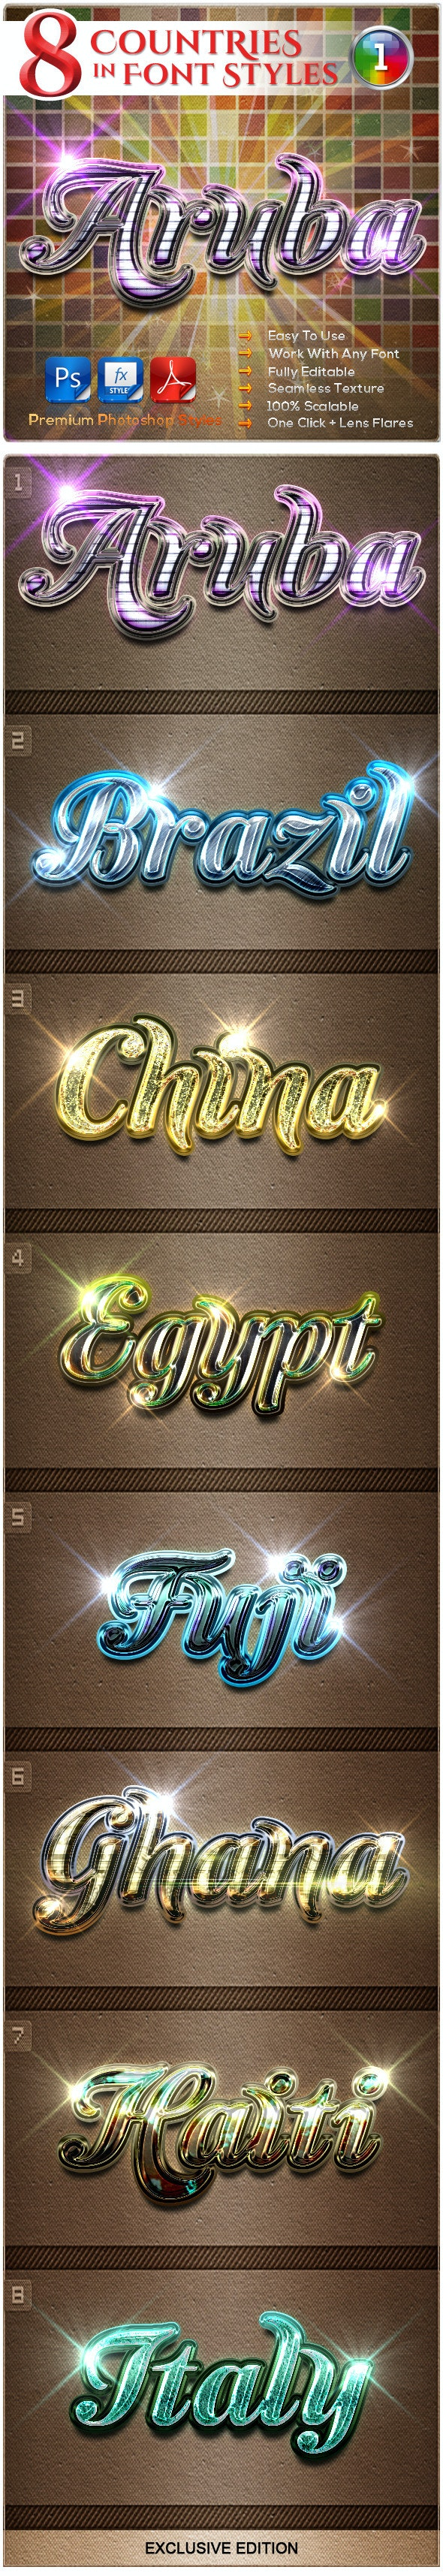 8 Countries in the Font Style #1 - Text Effects Styles